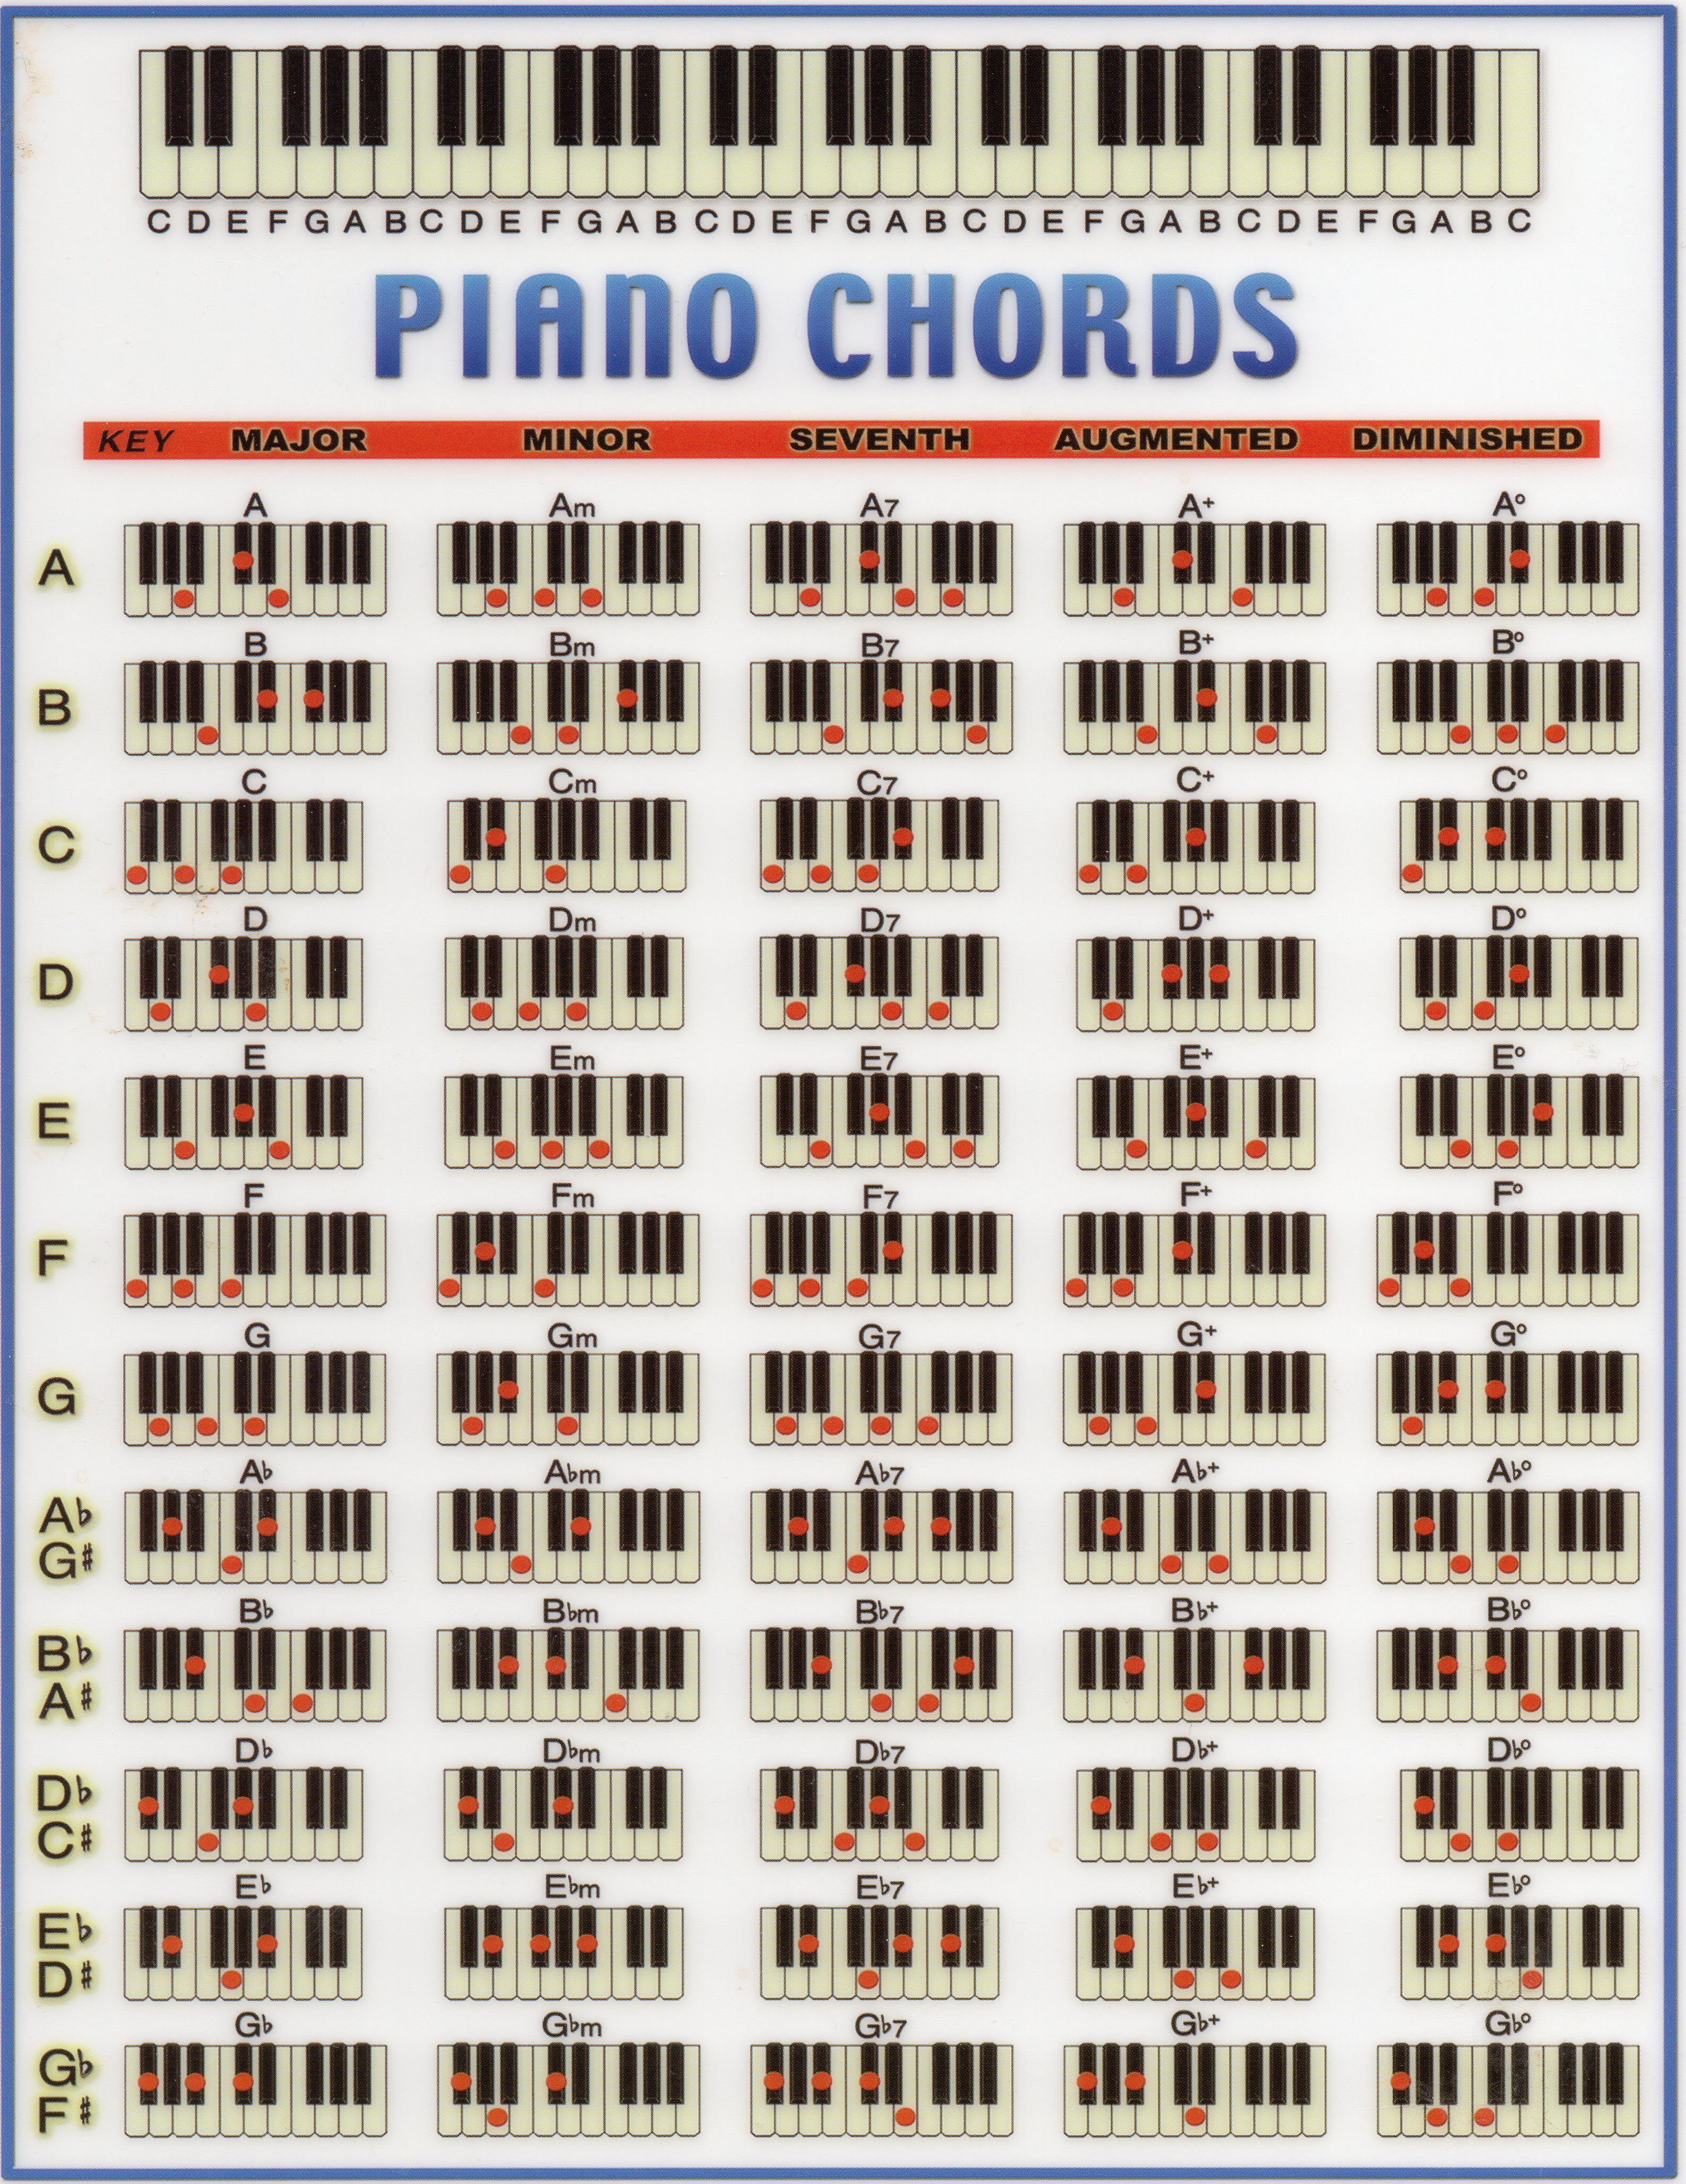 Handy Laminated Chord Chart For Piano Music Lessons Pinterest